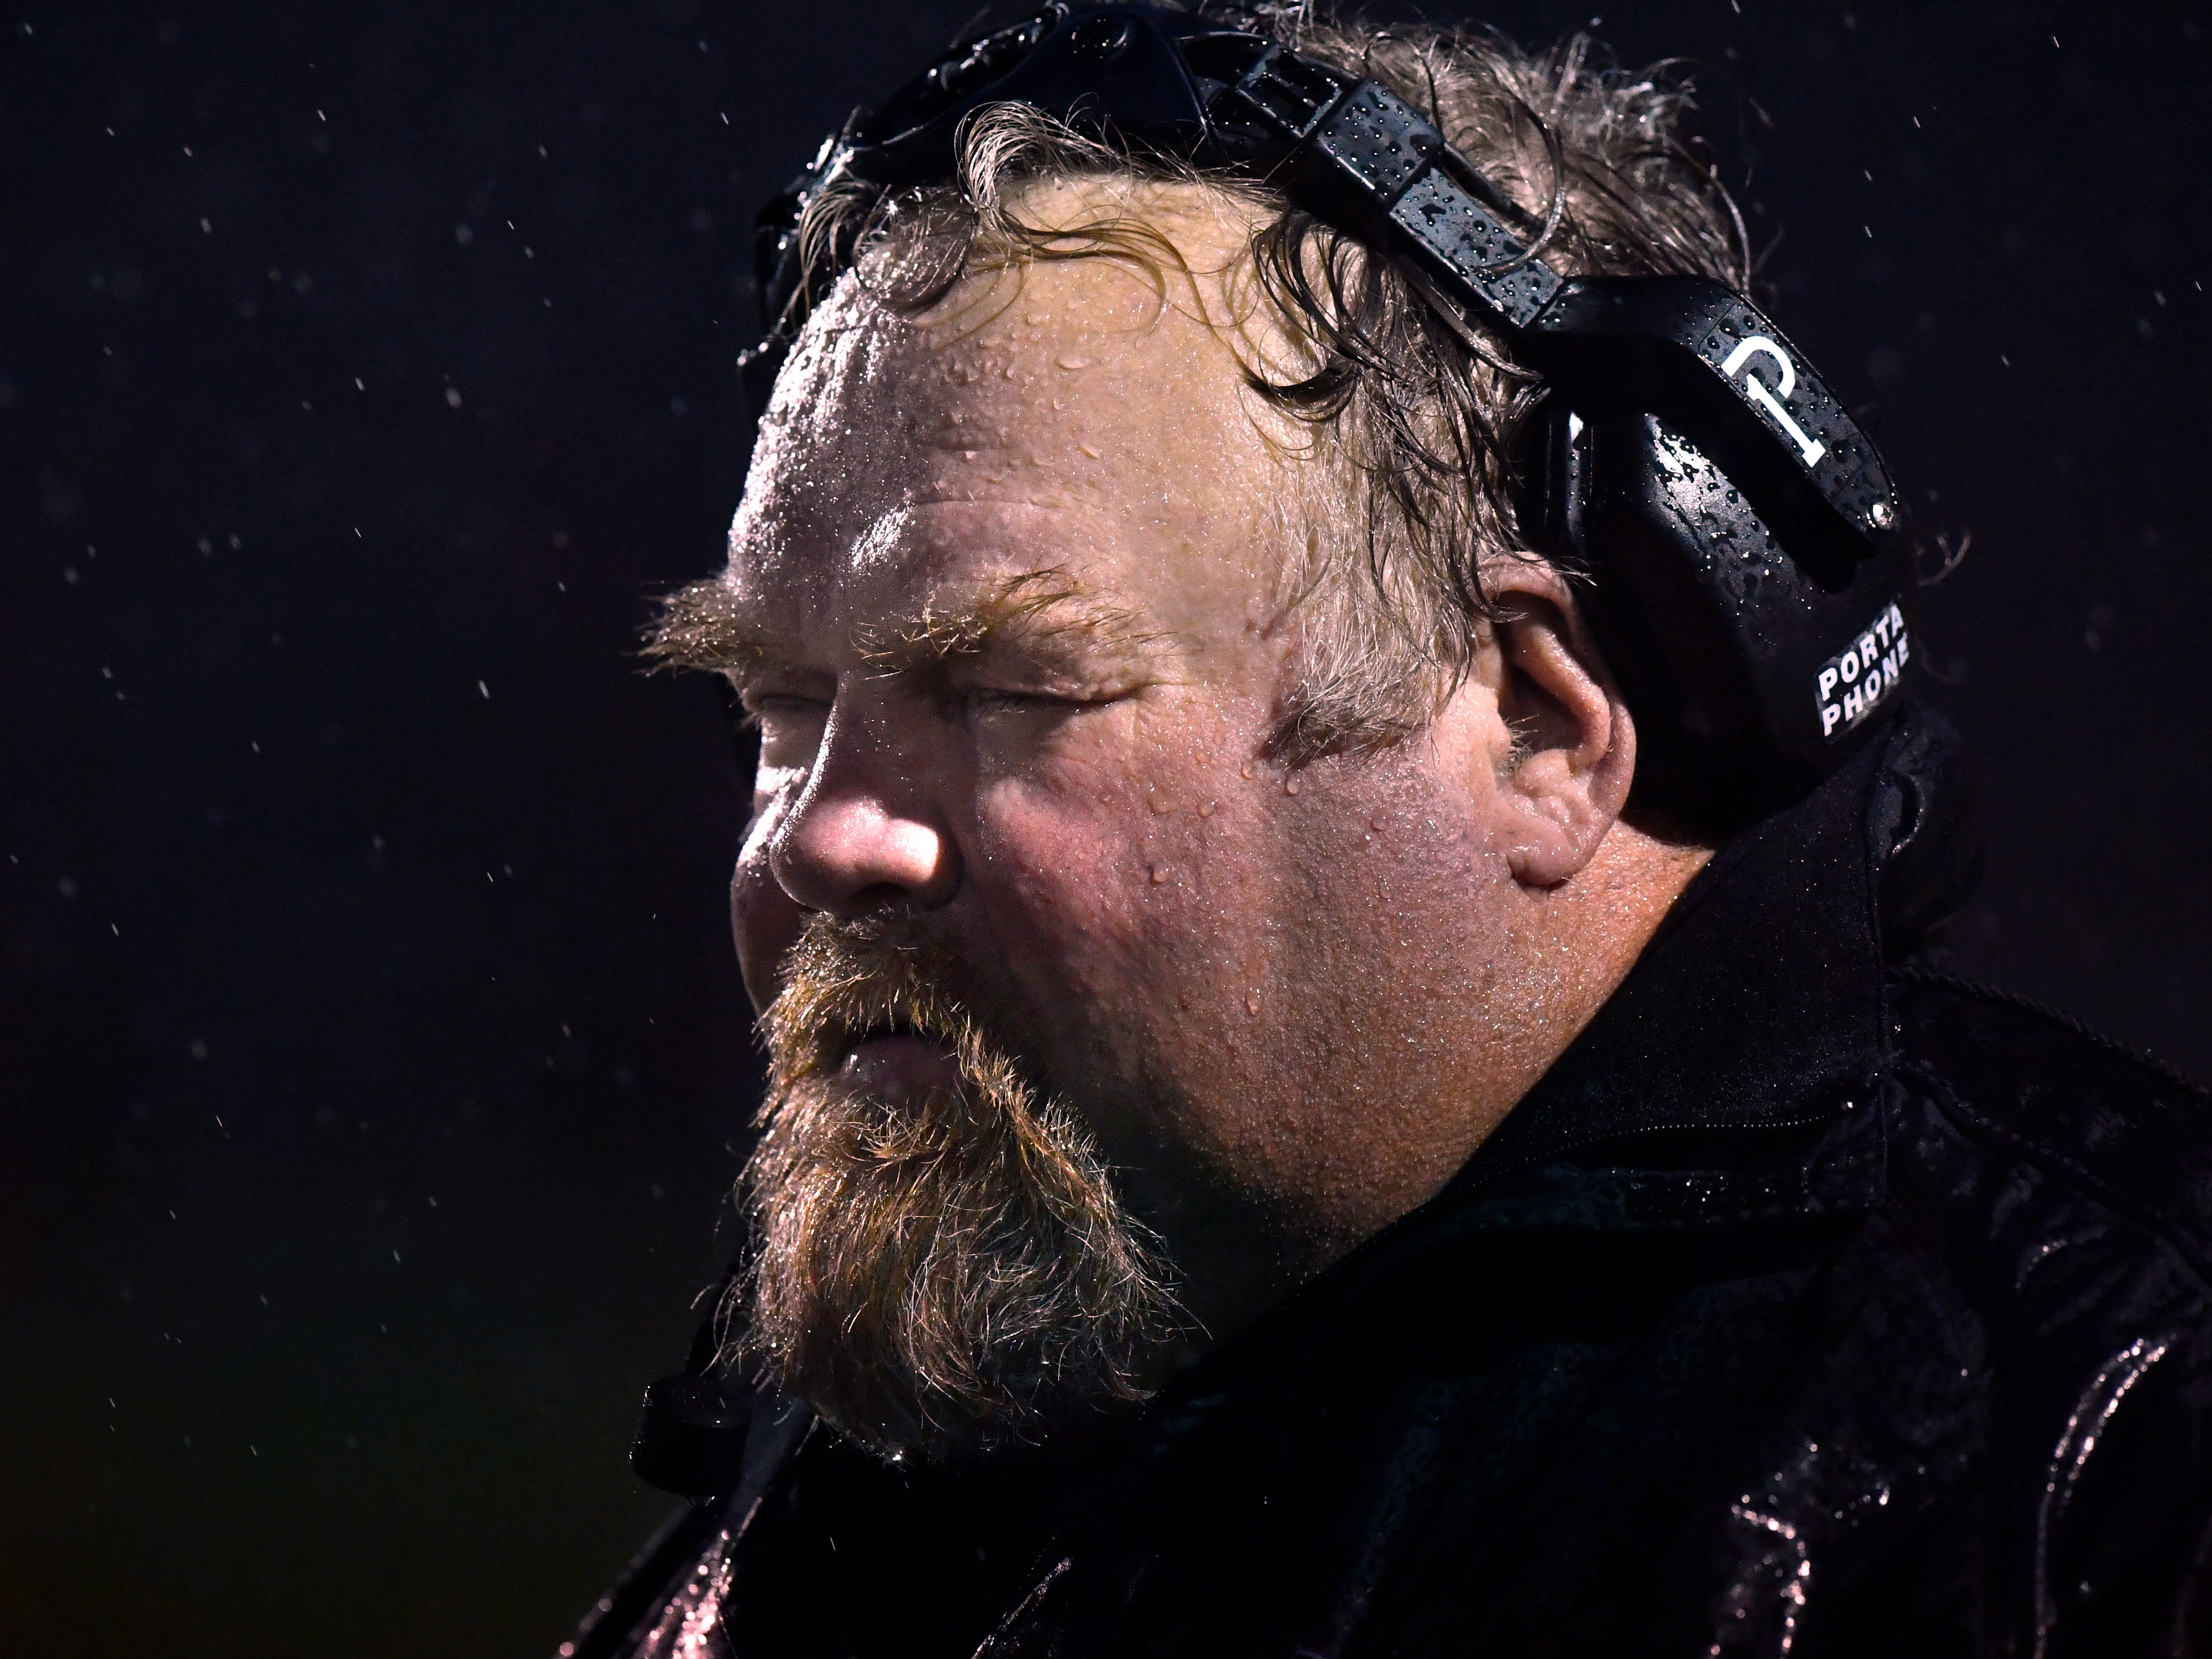 Abilene High assistant coach Wes Gorman blinks back the rain as he watches the game Friday Sept. 21, 2018 against Midland High. Weather was a factor in the game, leading to several turnovers, dropped footballs, and lost footing. Abilene won, 13-0.